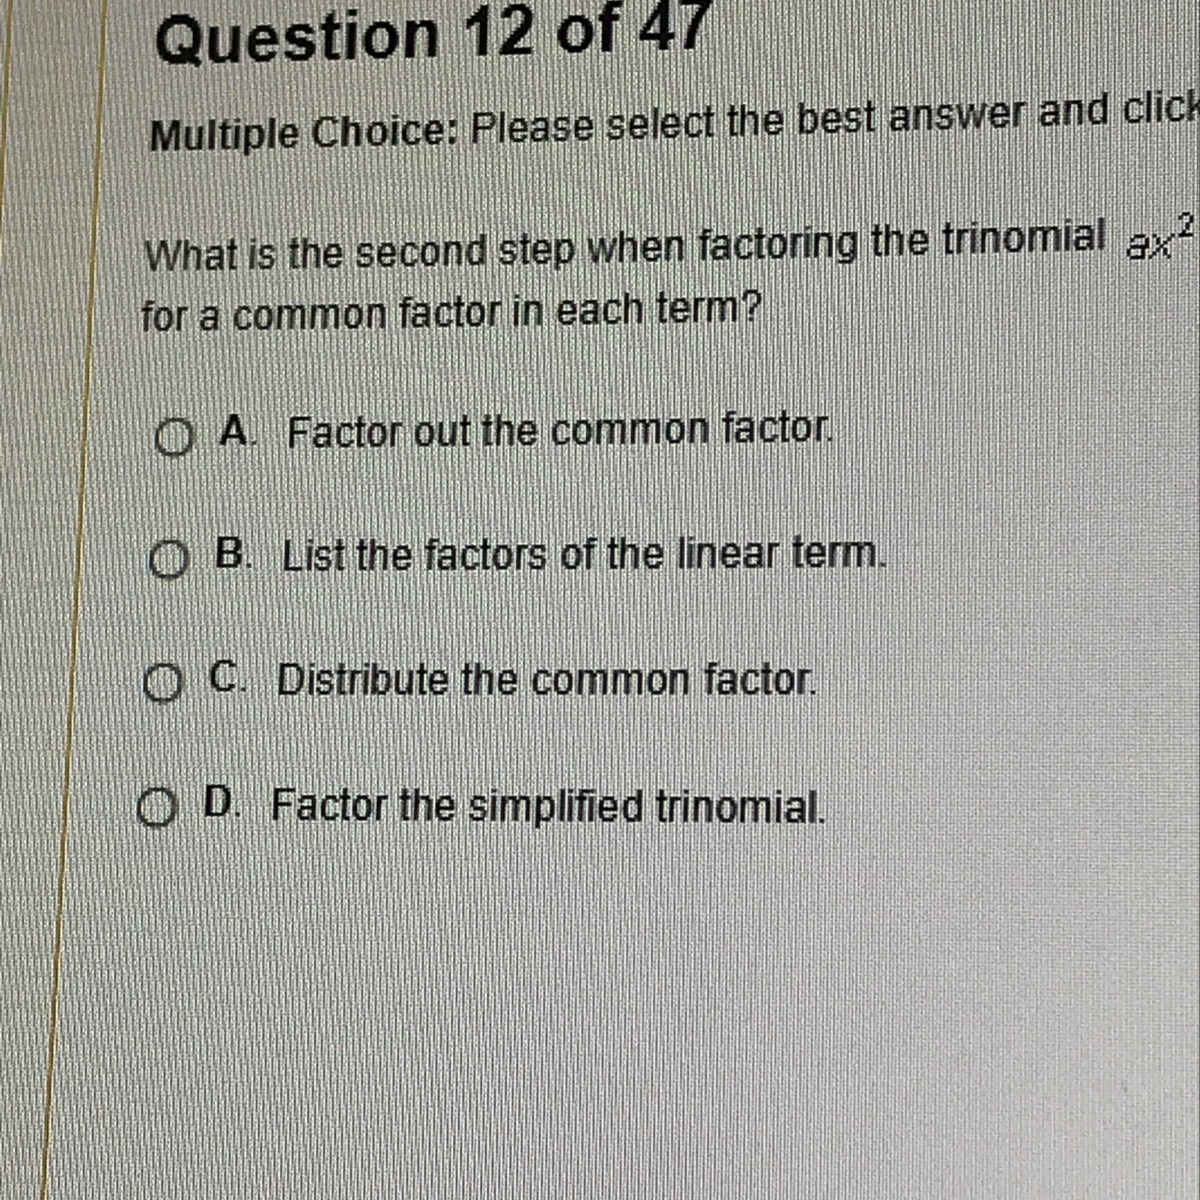 What Is The Second Step When Factoring The Trinomial Ax 2